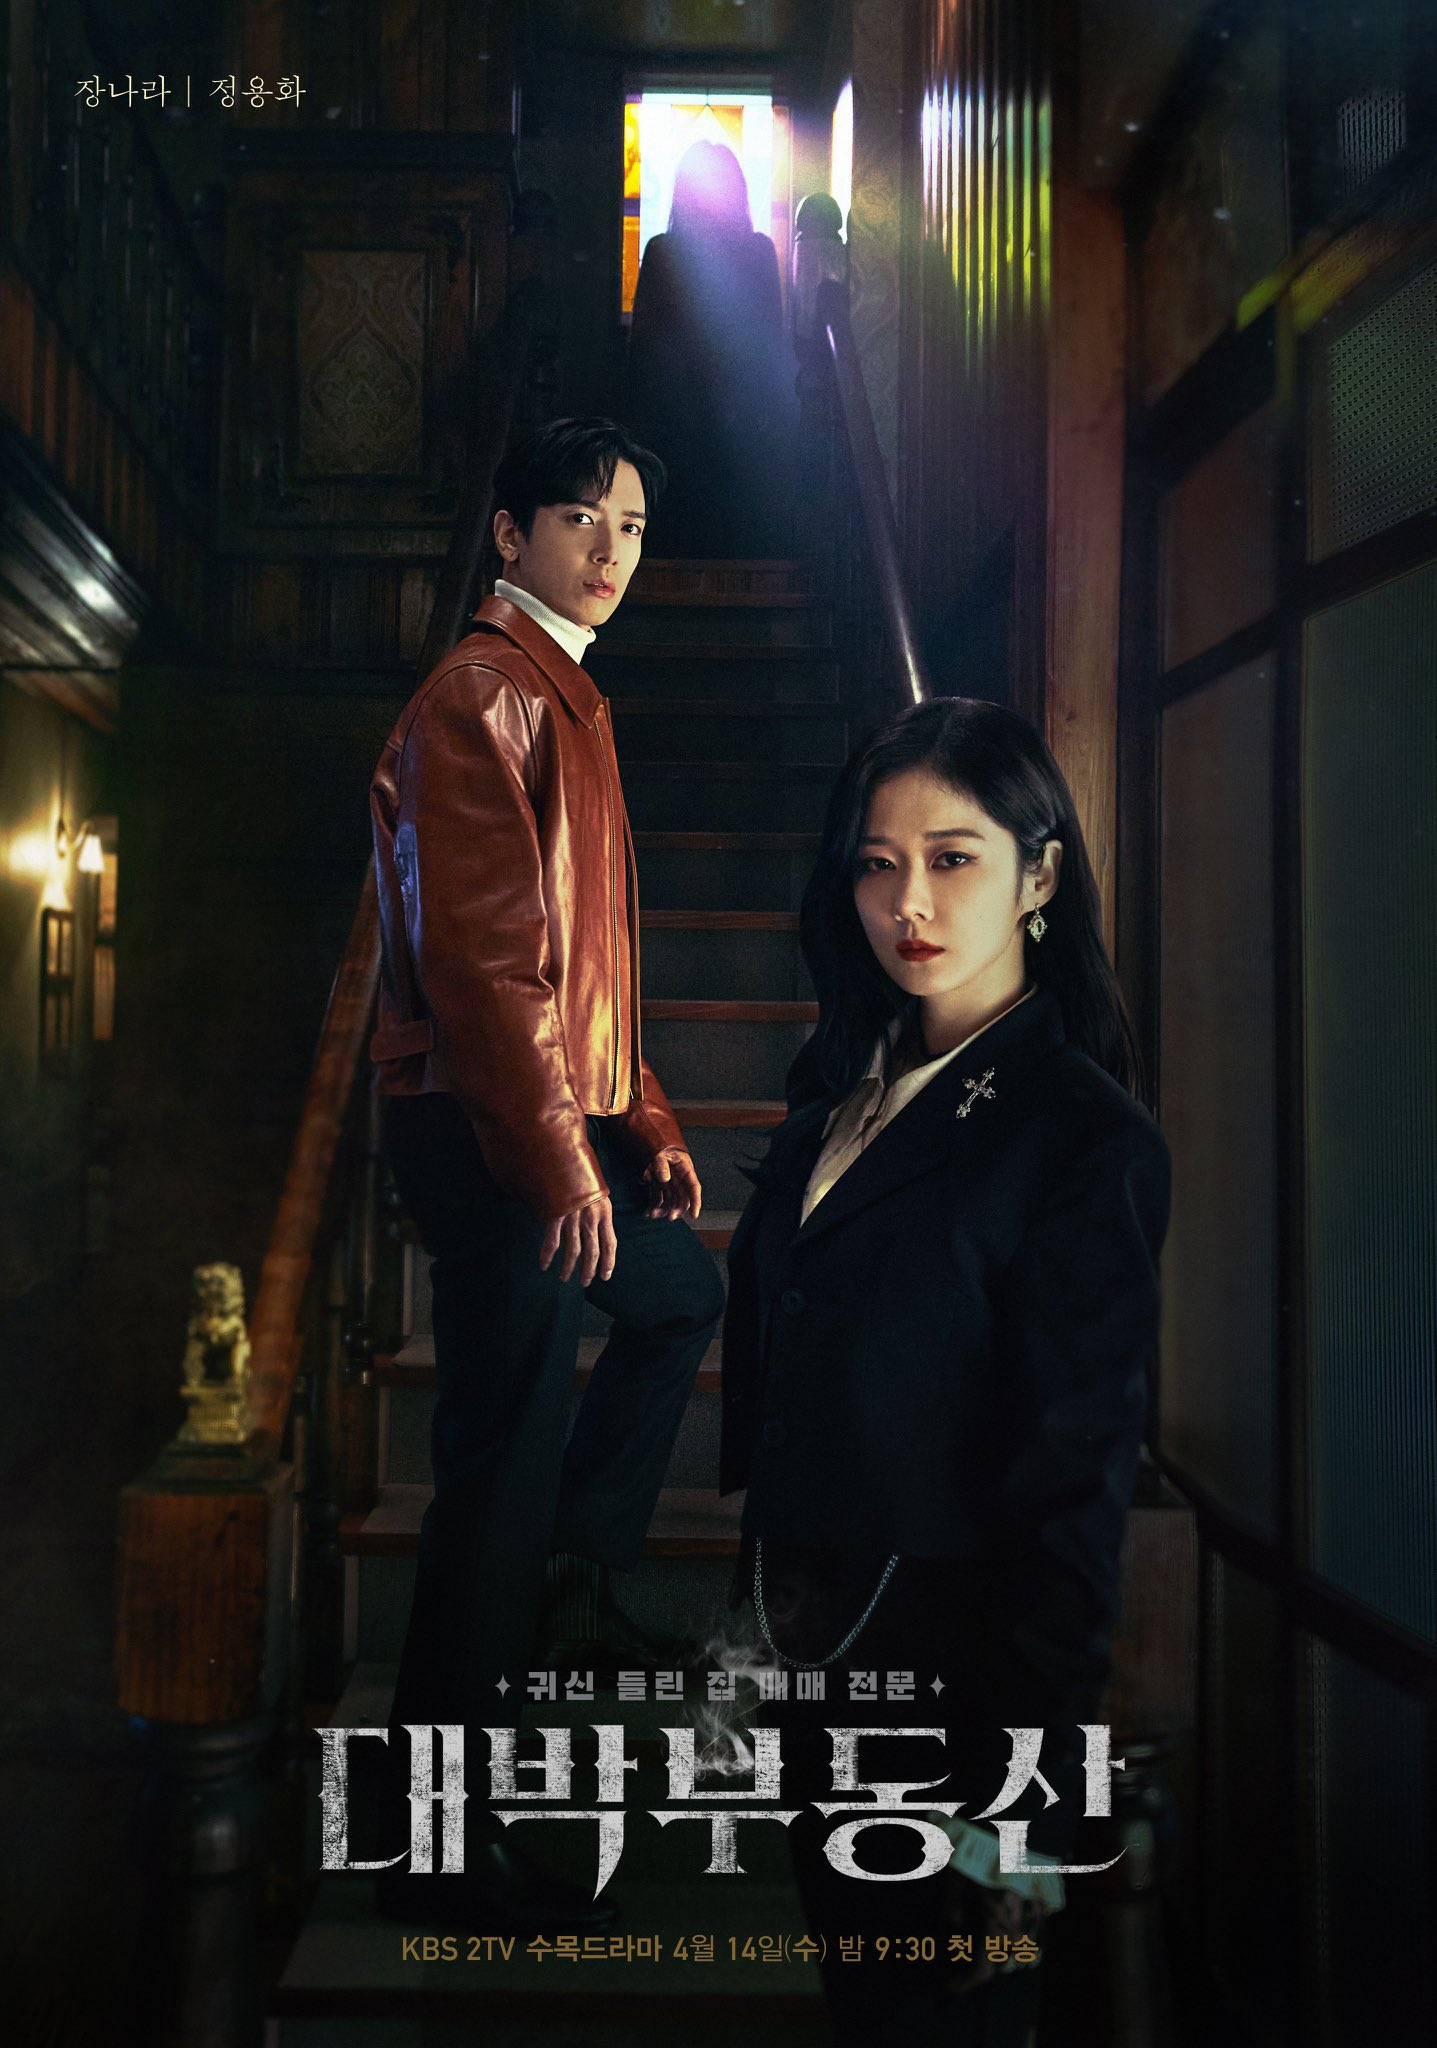 An occult drama about real estate brokers who exorcise and clean out buildings in which ghosts frequent and people have died in.